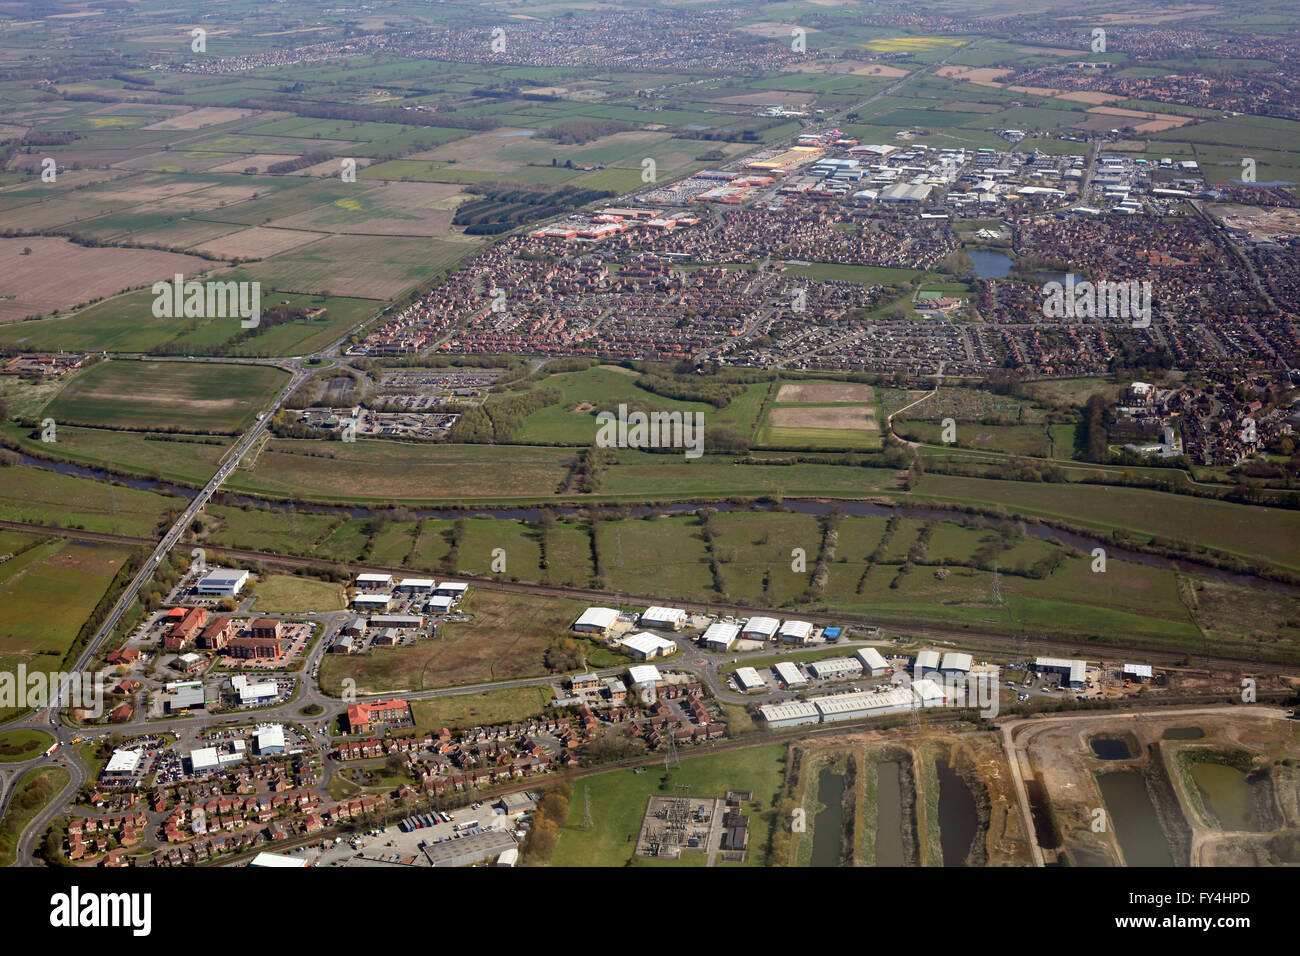 aerial view of York Business Park, River Ouse, Rawcliffe & Clifton Moor, all north of York, UK - Stock Image